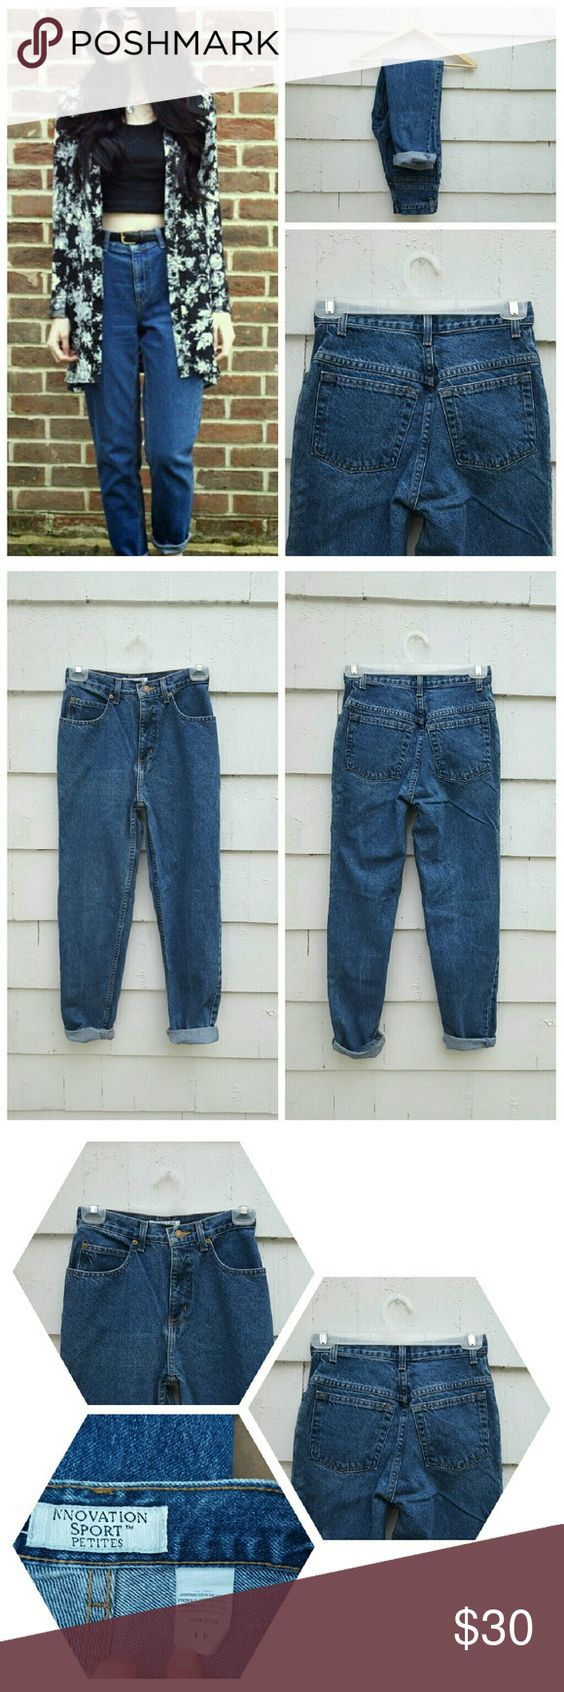 "Vintage Petite Dark Wash High Waisted Mom Jeans Classic pair of petites high waisted denim jeans, medium/dark blue wash. 8/10 condition, great vintage condition ! ** DO NOT PURCHASE THESE JEANS UNTIL YOU COMPARE EVERY SINGLE MEASUREMENT TO YOUR OWN HIGH WAISTED JEANS - NO RETURNS ** Size 4 P. Based off of waist measurement, this pair could possibly fit size waist size 23/24 best. But ABSOLUTELY make sure to refer to measurements Waist 12"" Rise 11""  Thigh 9.5"" Hip 17"" Inseam 27"" Leg Opening…"